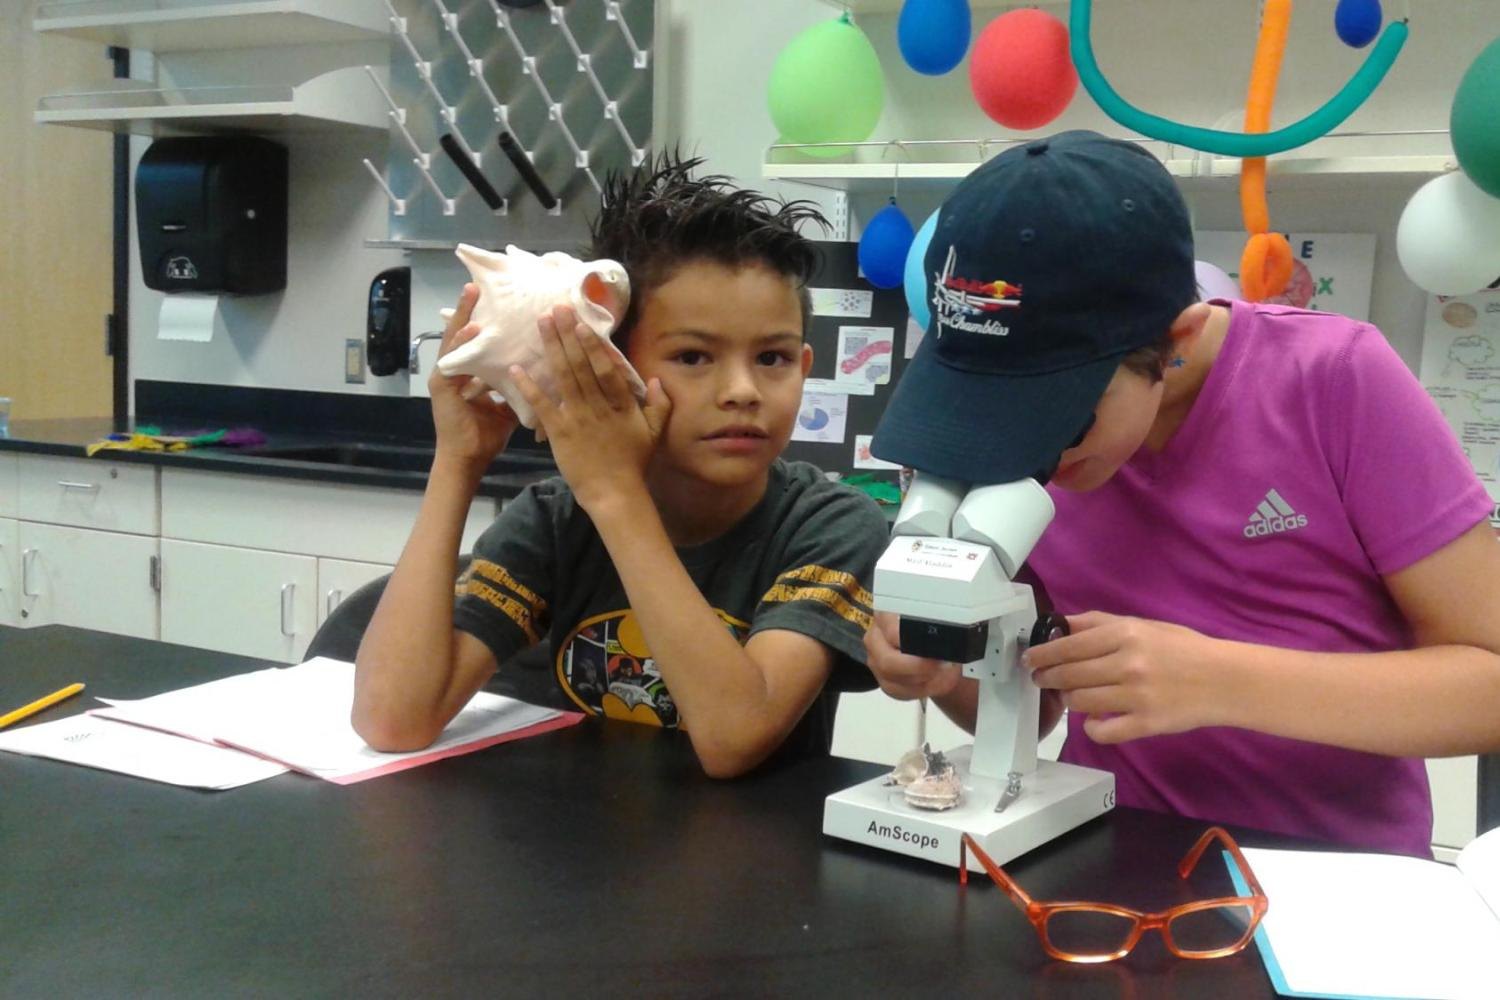 boy holding large shell and another boy looking through microscope